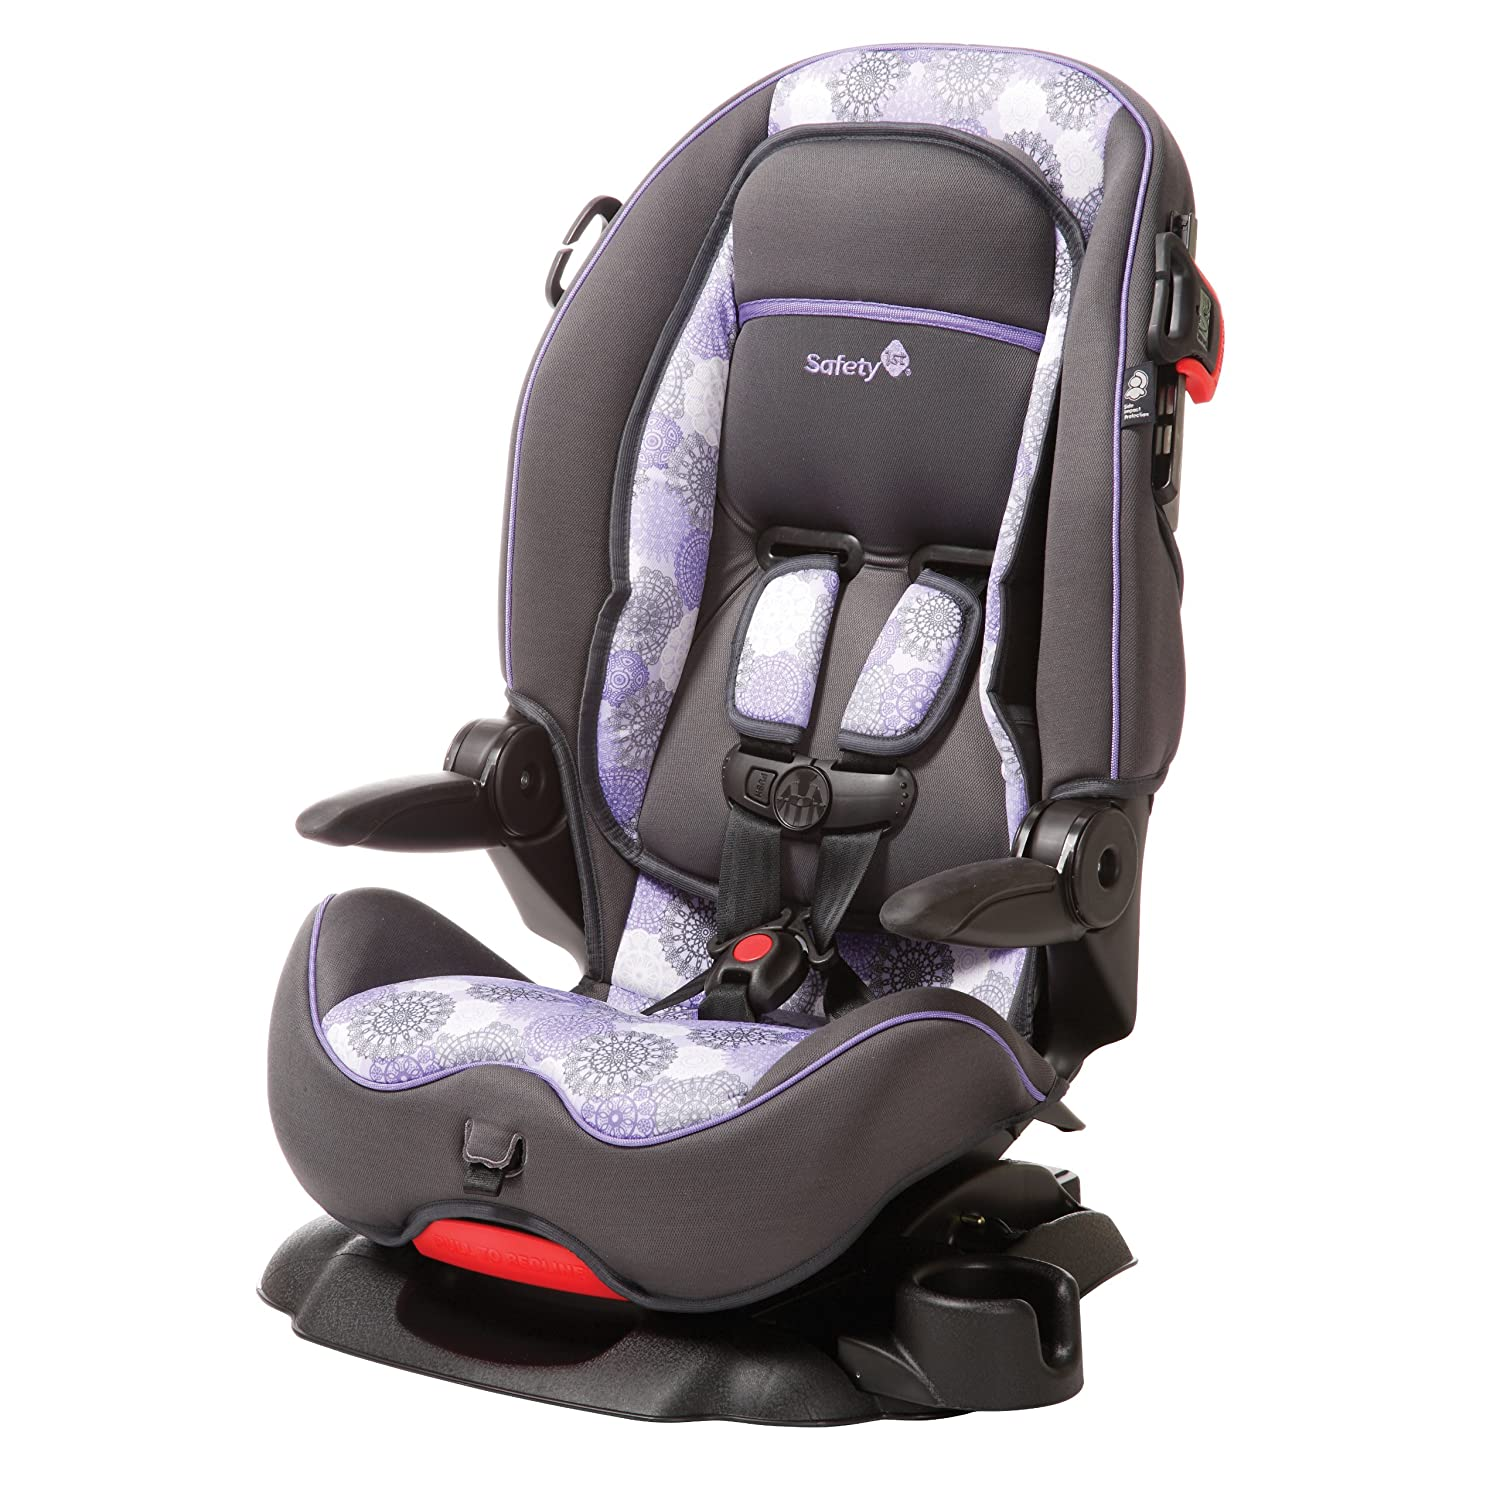 Safety First Infant Car Seats Safety 1st Summit Car Seat